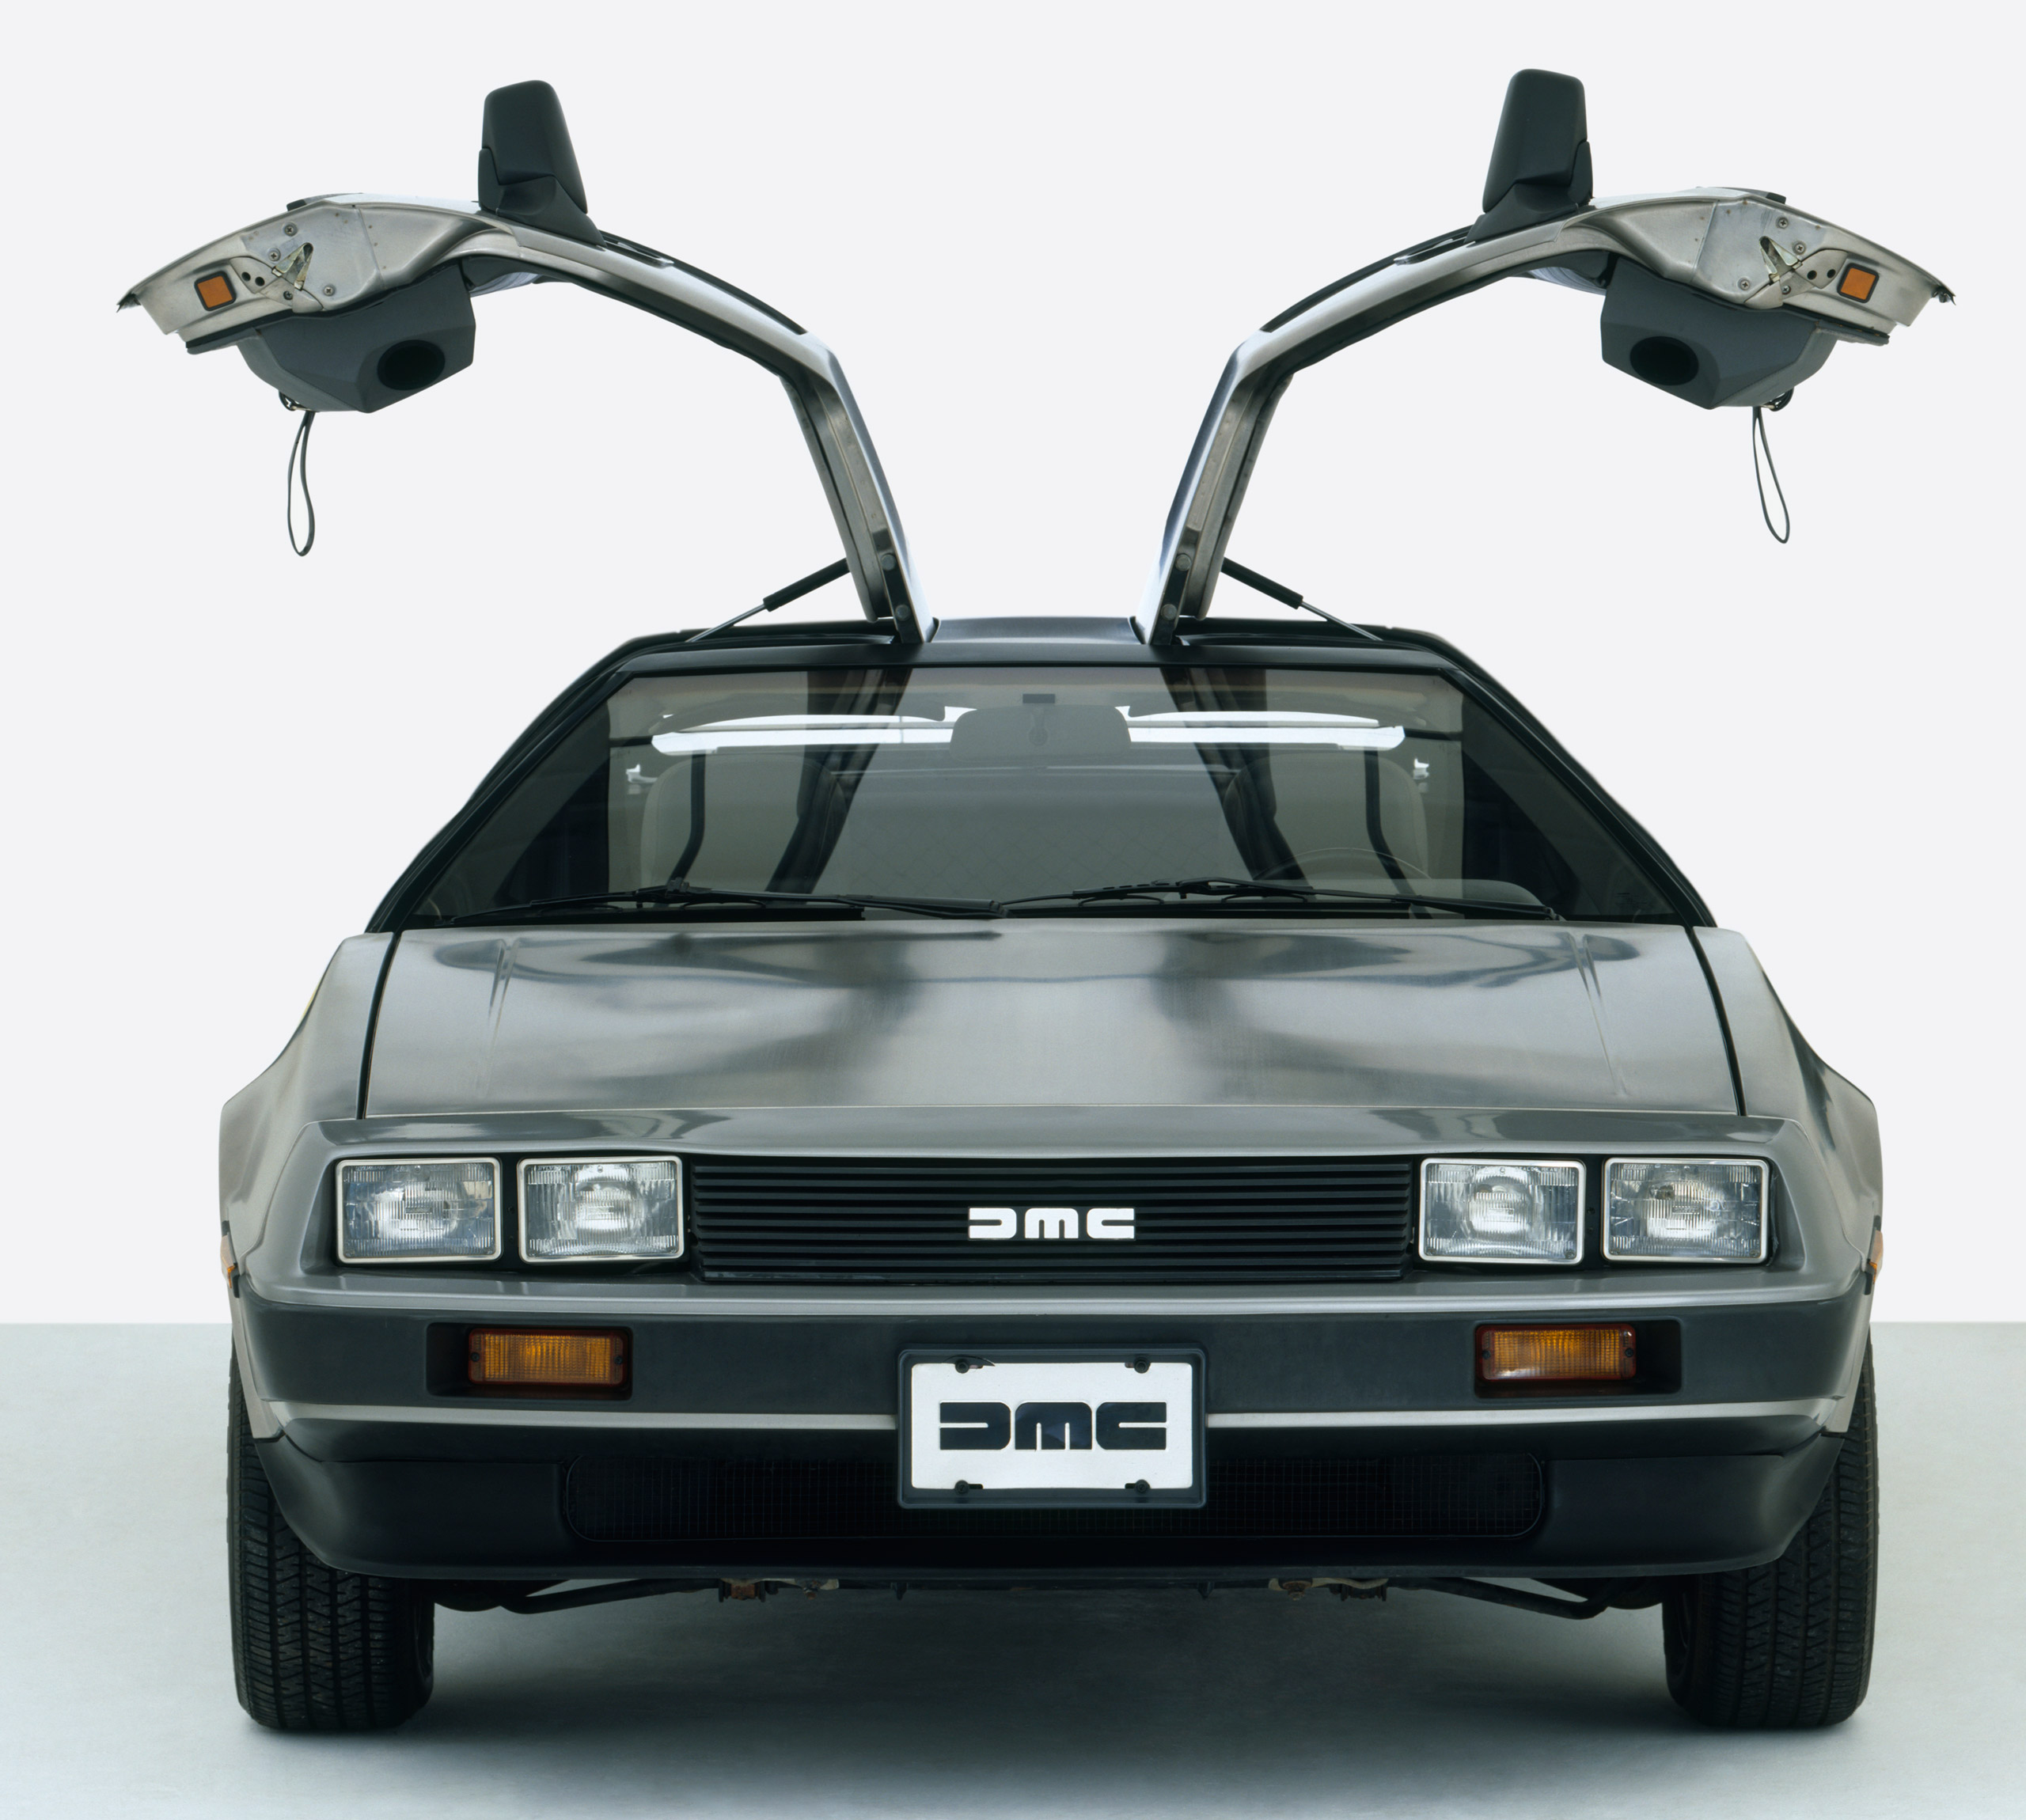 DeLorean DMC 12 with gullwing doors, 1979-82, front view.